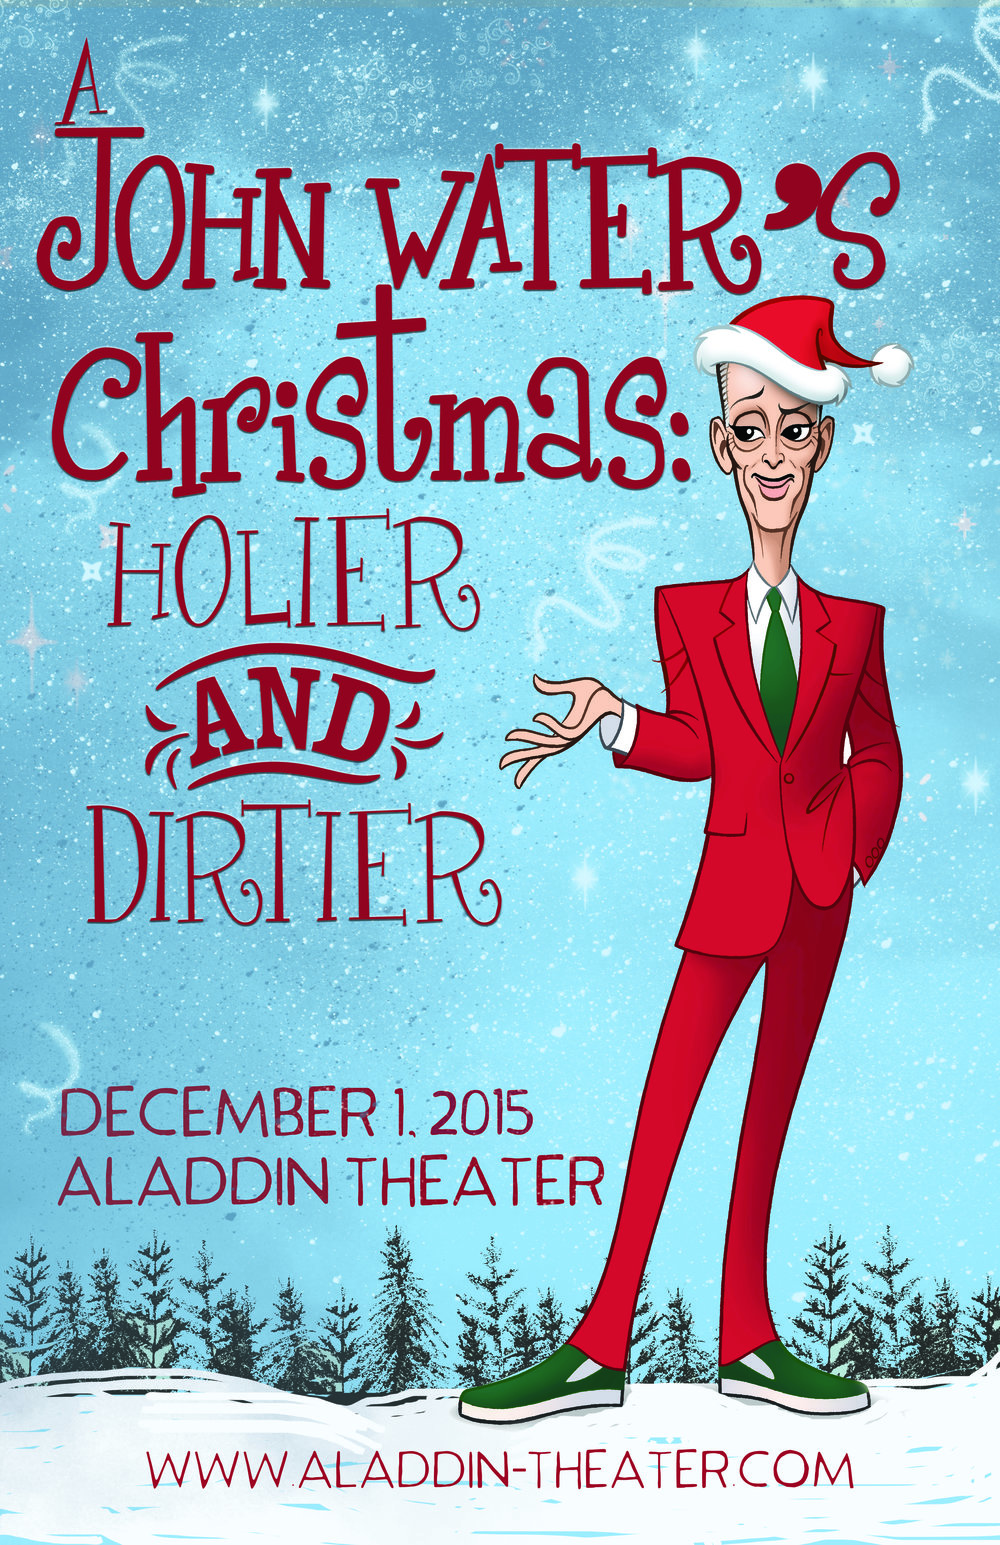 John Waters Christmas Poster.jpg